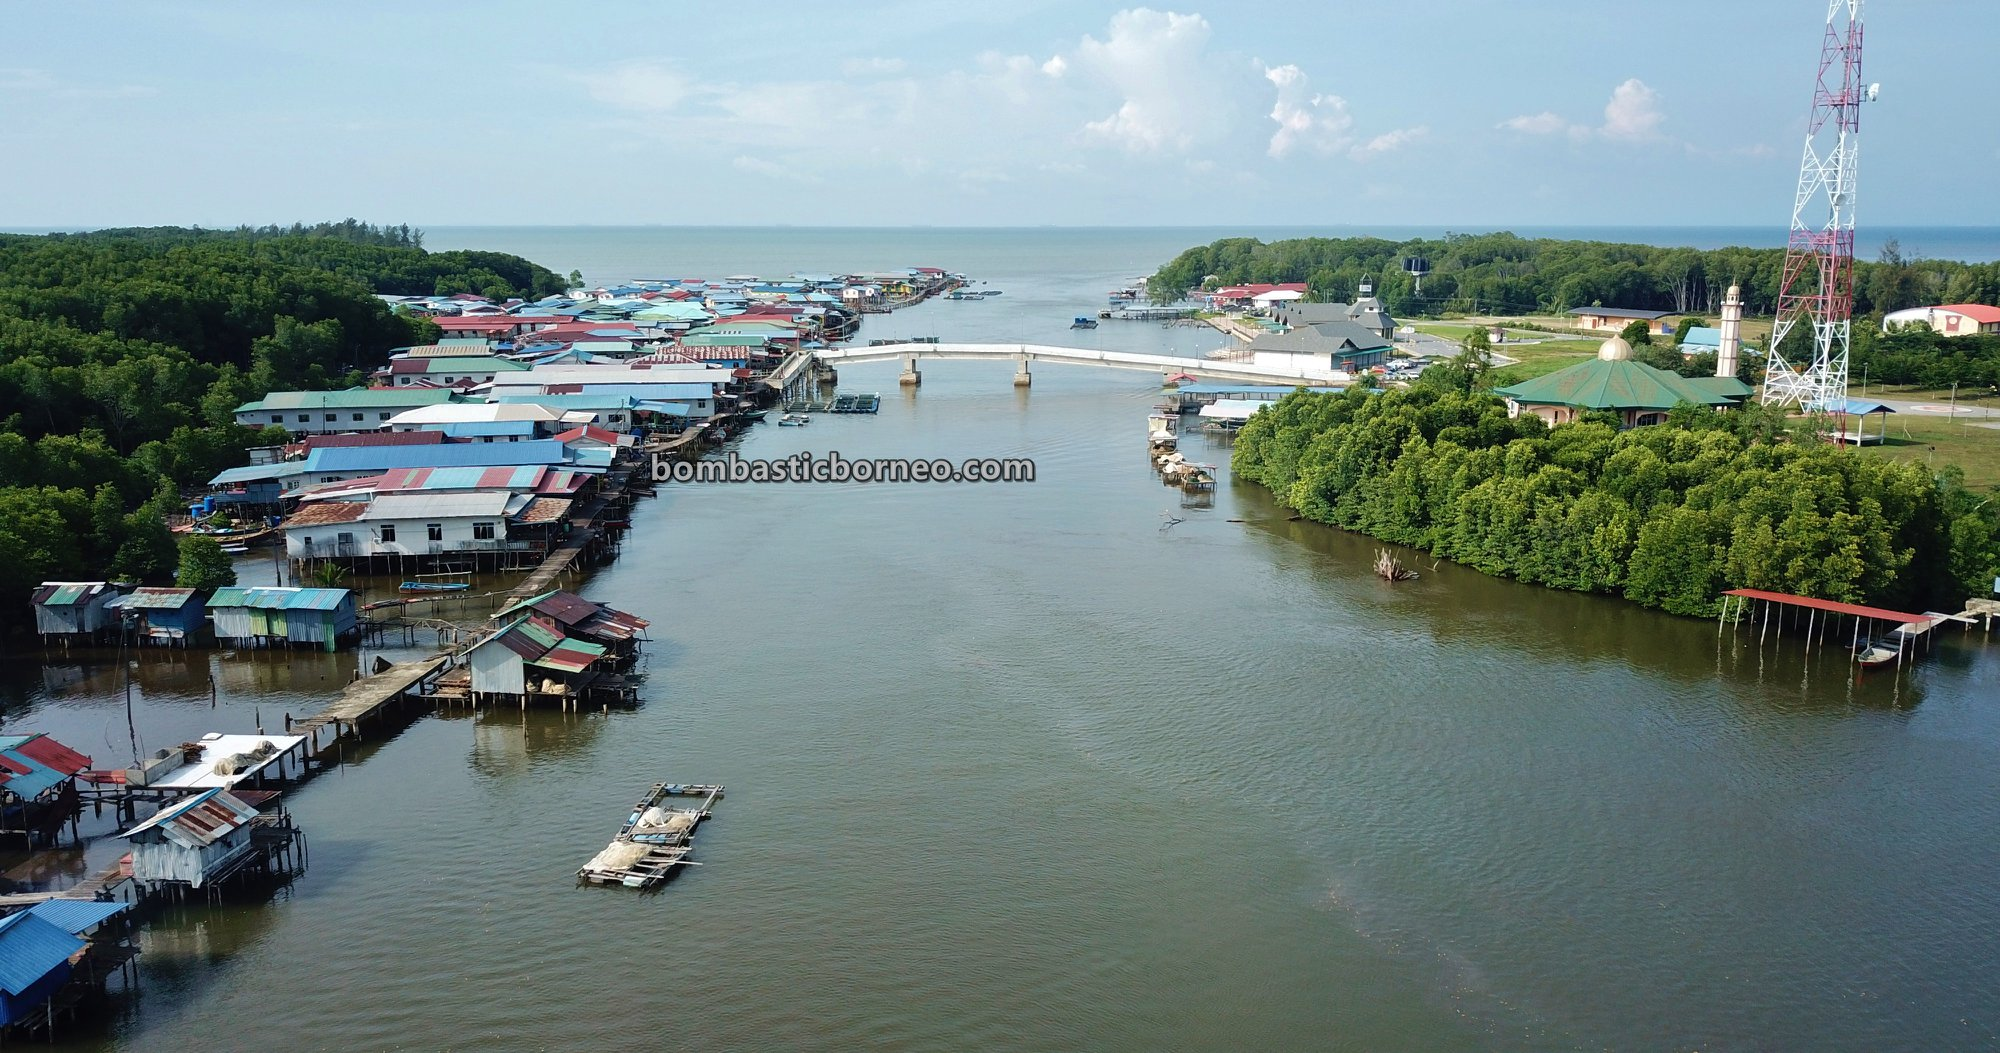 authentic, traditional, Kampung Awat-Awat, water village, fishing village, backpackers, destination, Lawas, Limbang, Malaysia, Sarawak, Tourism, tourist attraction, travel guide, Borneo